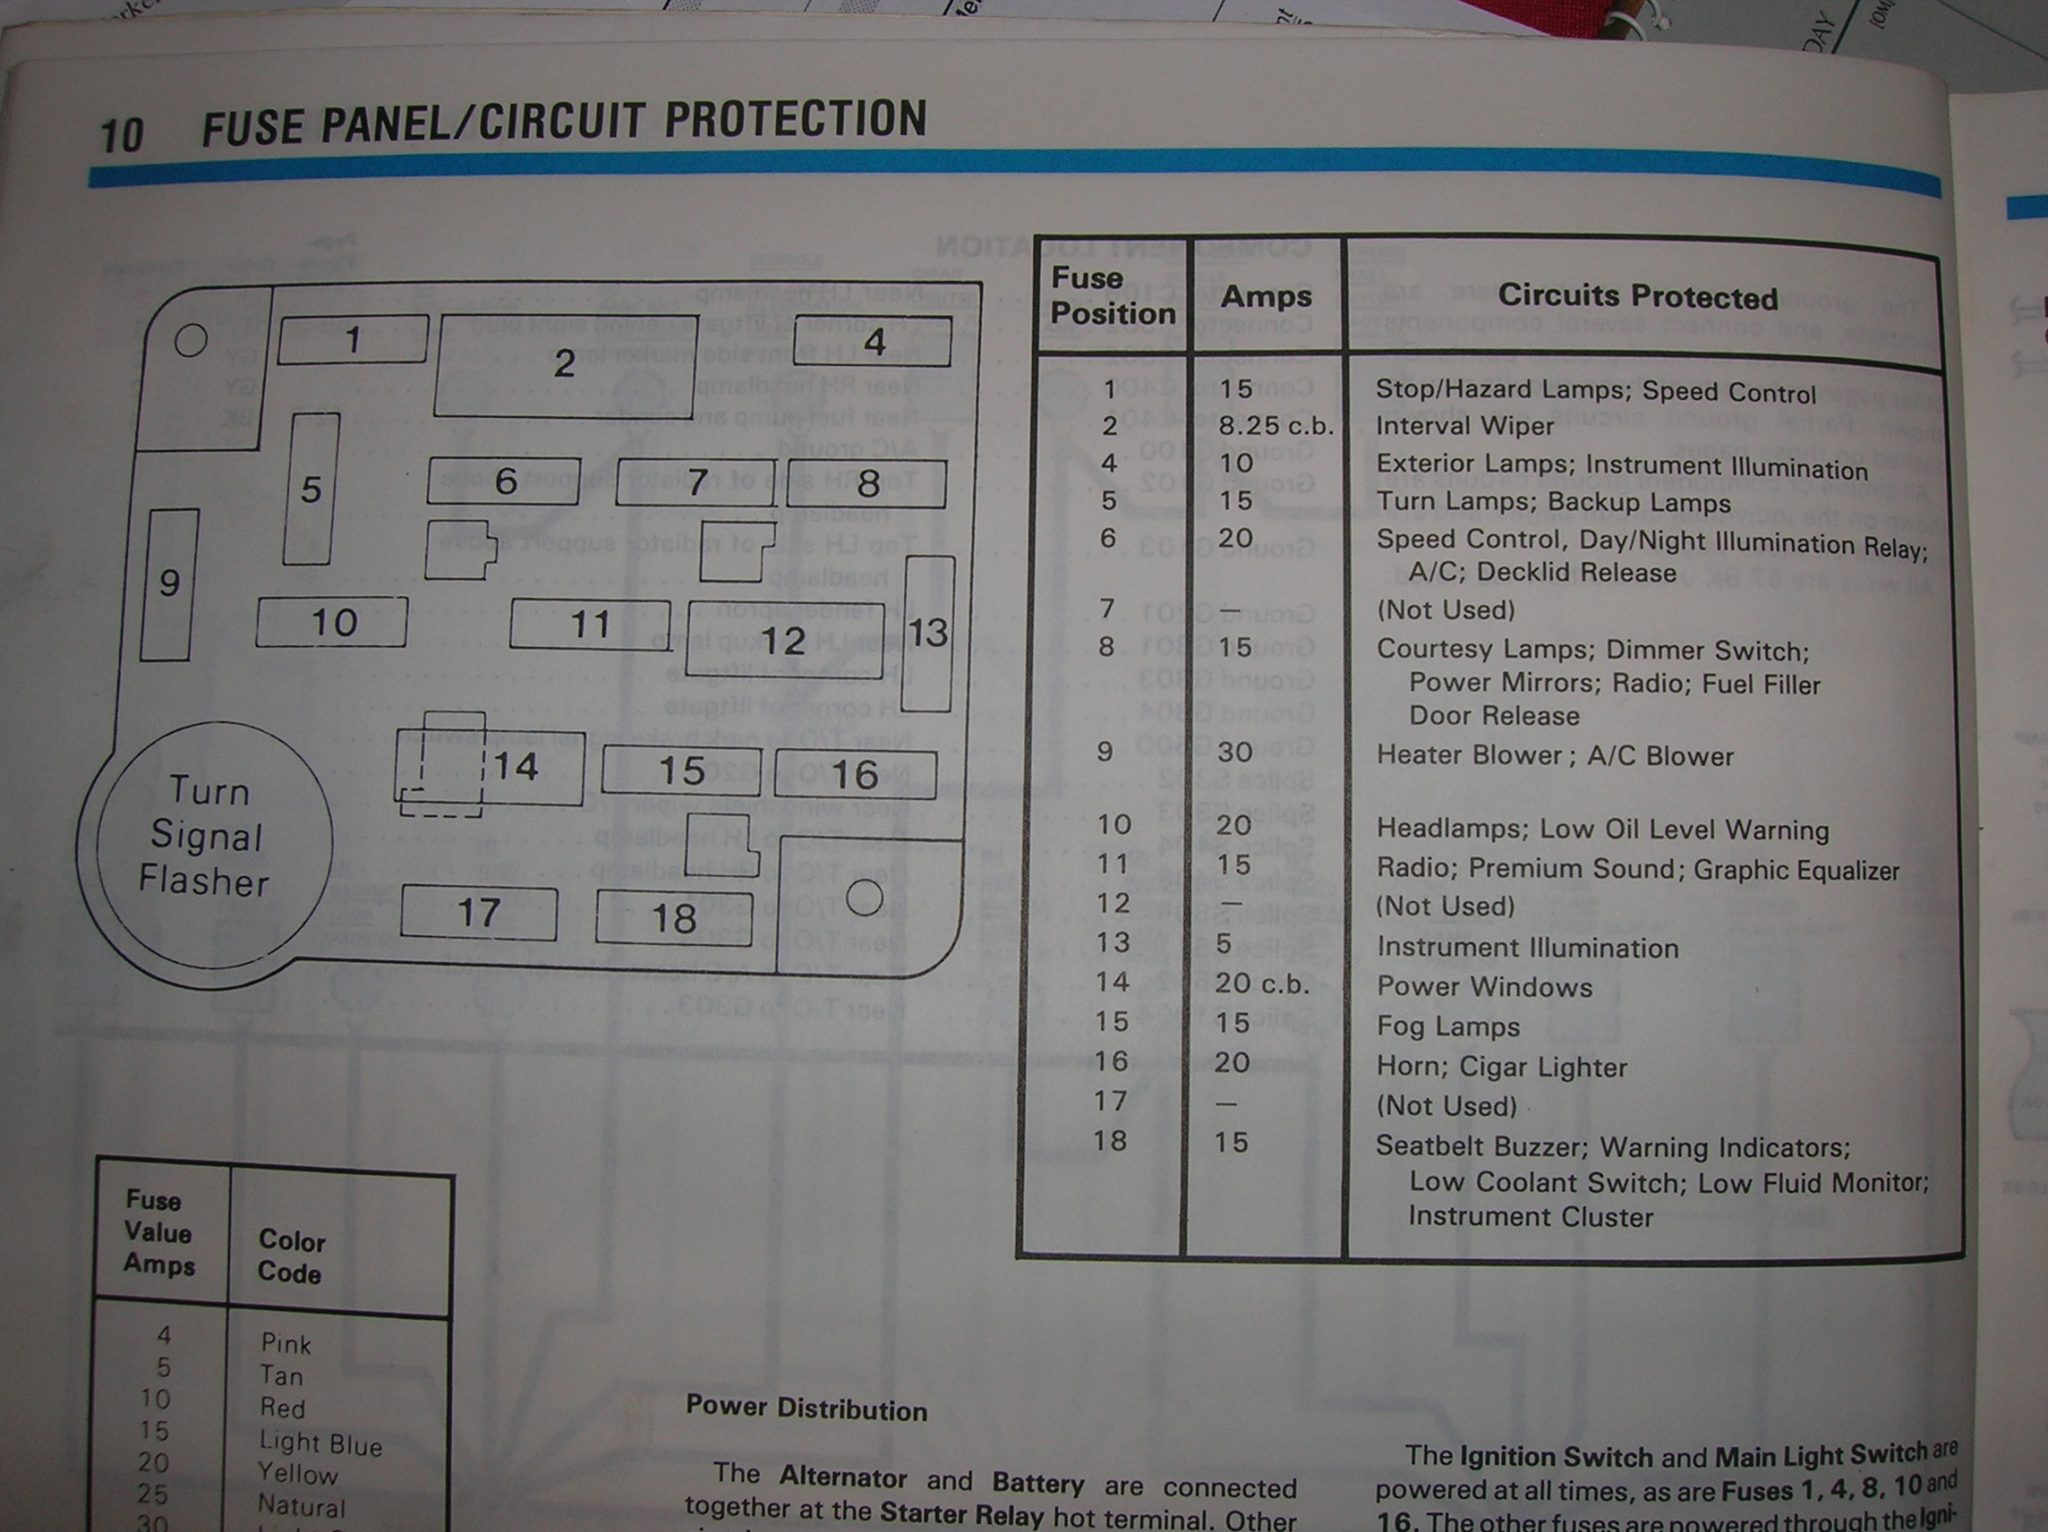 85 Mustang Fuse Box Diagram Daily Update Wiring Diagram \u2022 86 Mustang  Fuse Box Diagram 1986 Mustang Fuse Box Diagram